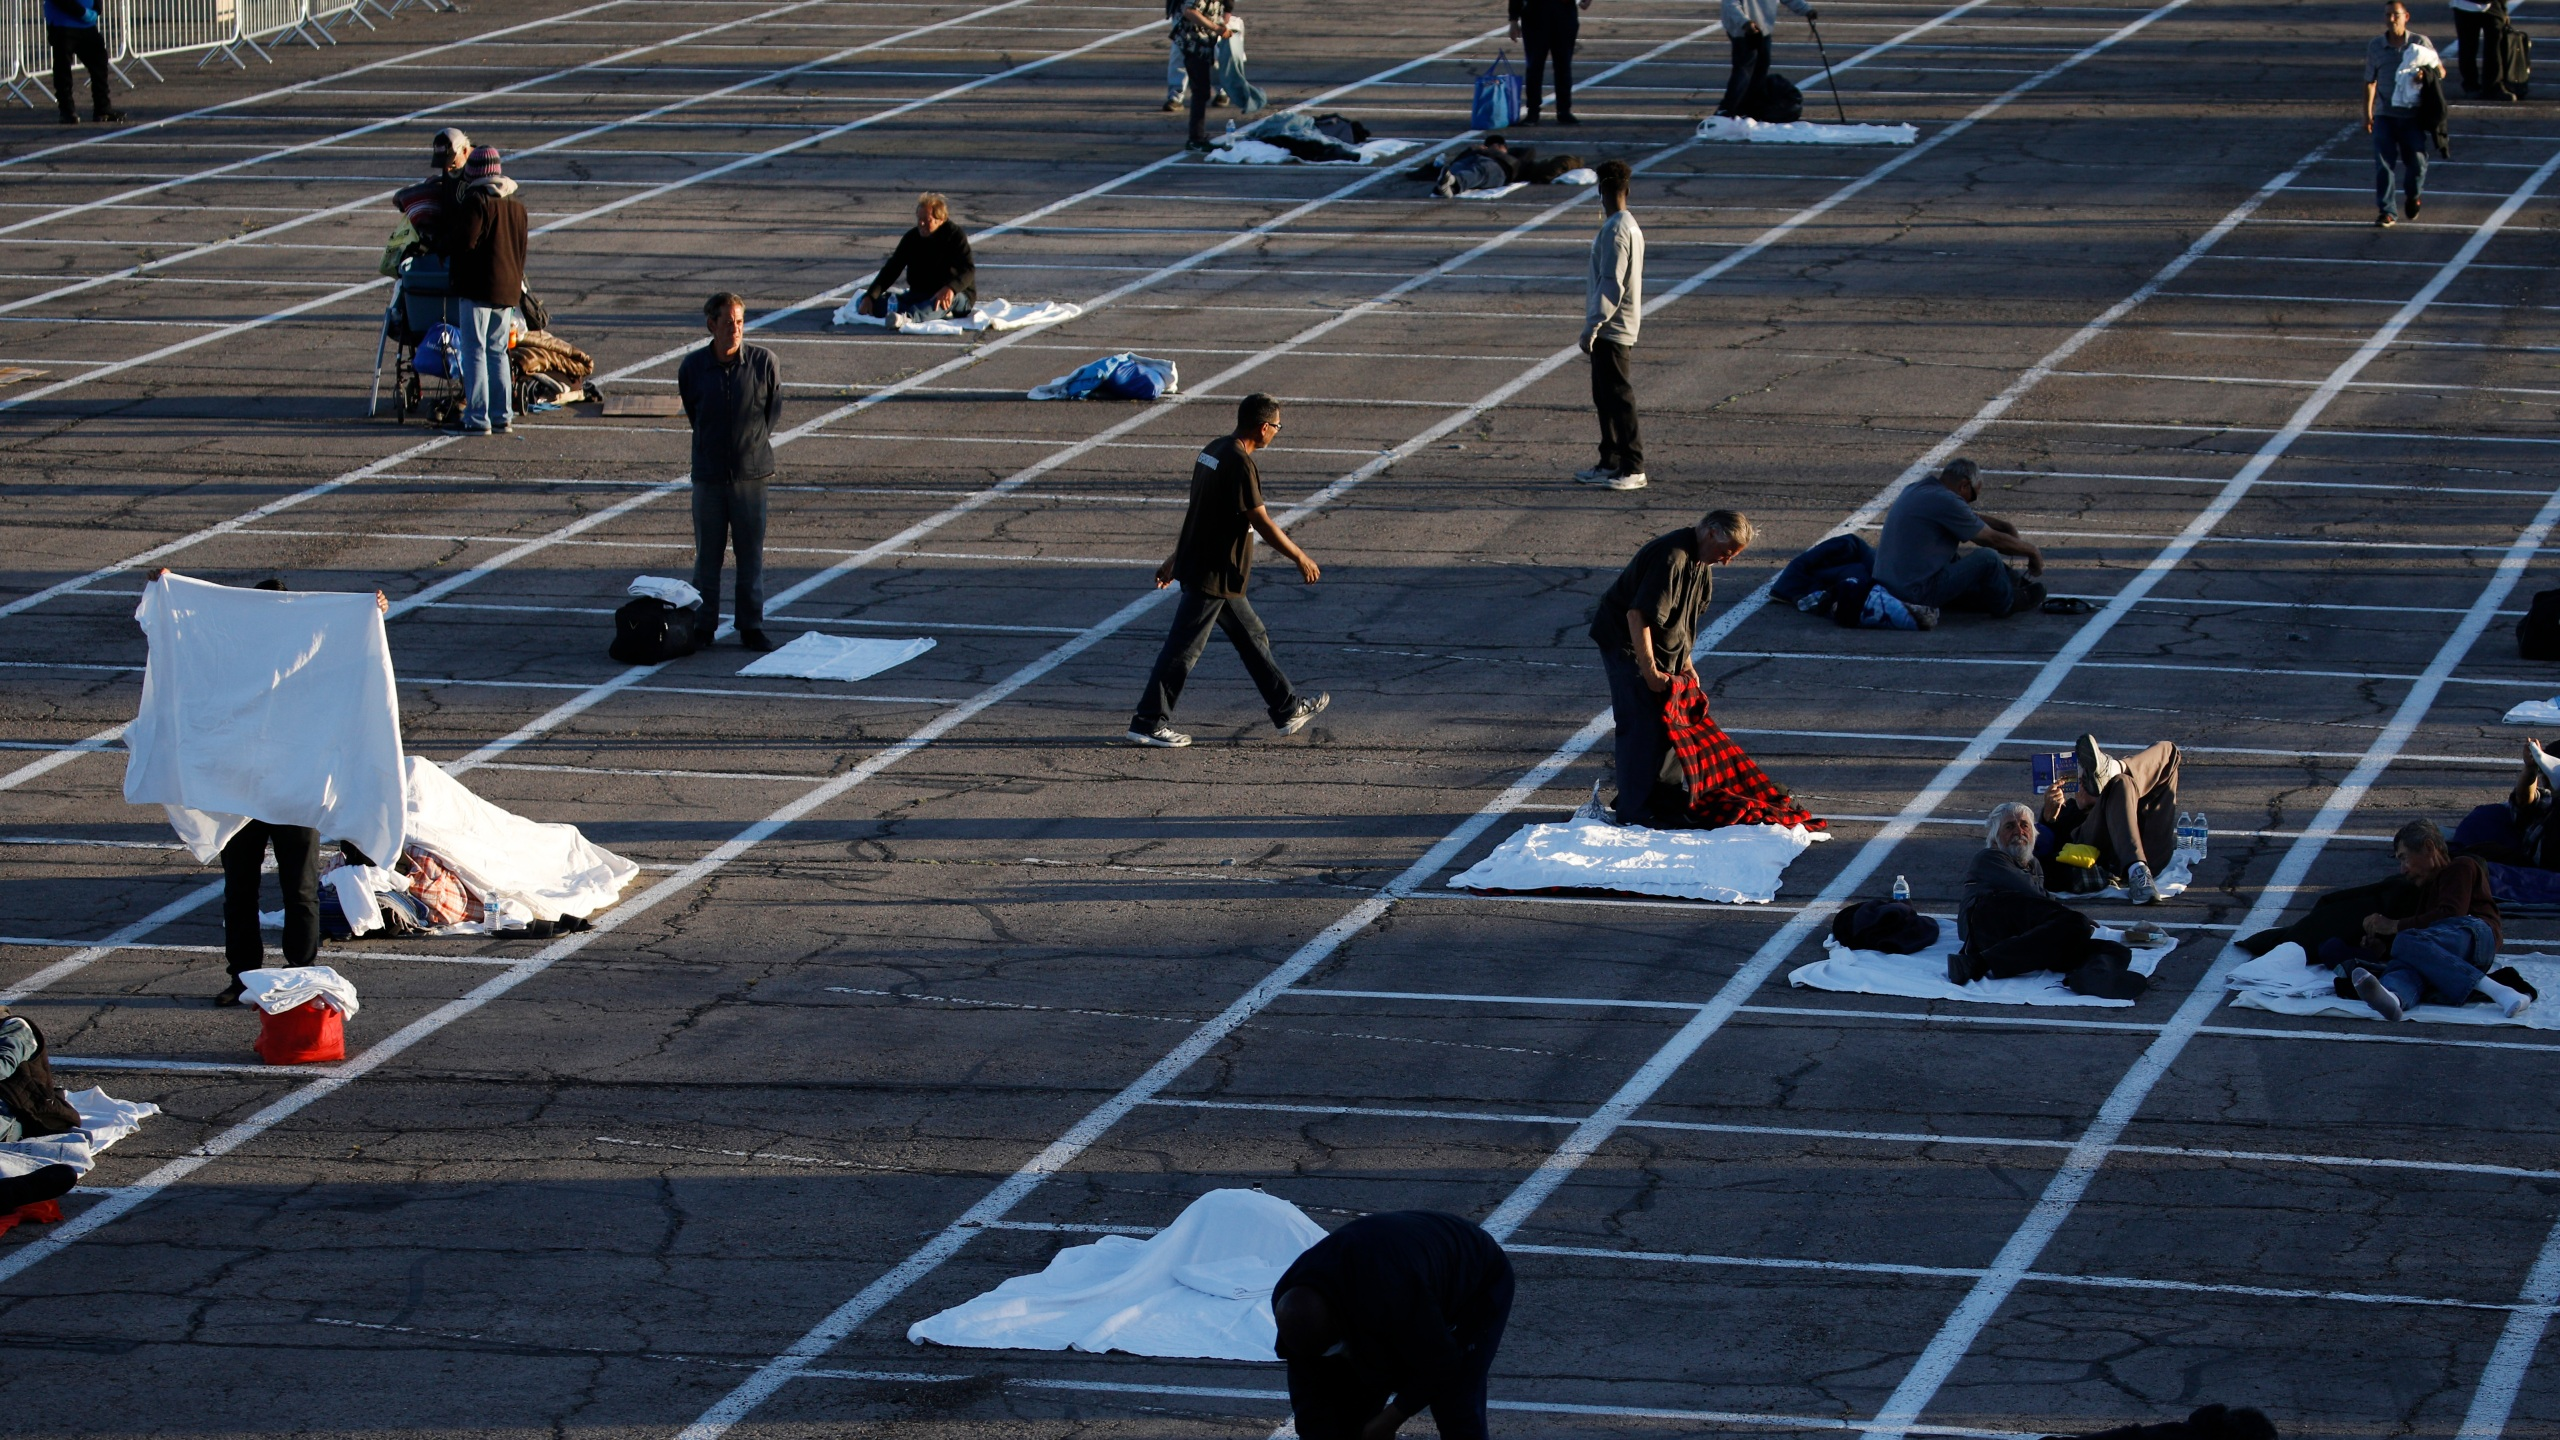 People prepare to sleep in areas marked by painted boxes on the ground of a parking lot at a makeshift camp for the homeless in Las Vegas. Officials opened part of the lot as a makeshift homeless shelter after a local shelter closed when a man staying there tested positive for the coronavirus. (AP Photo/John Locher)